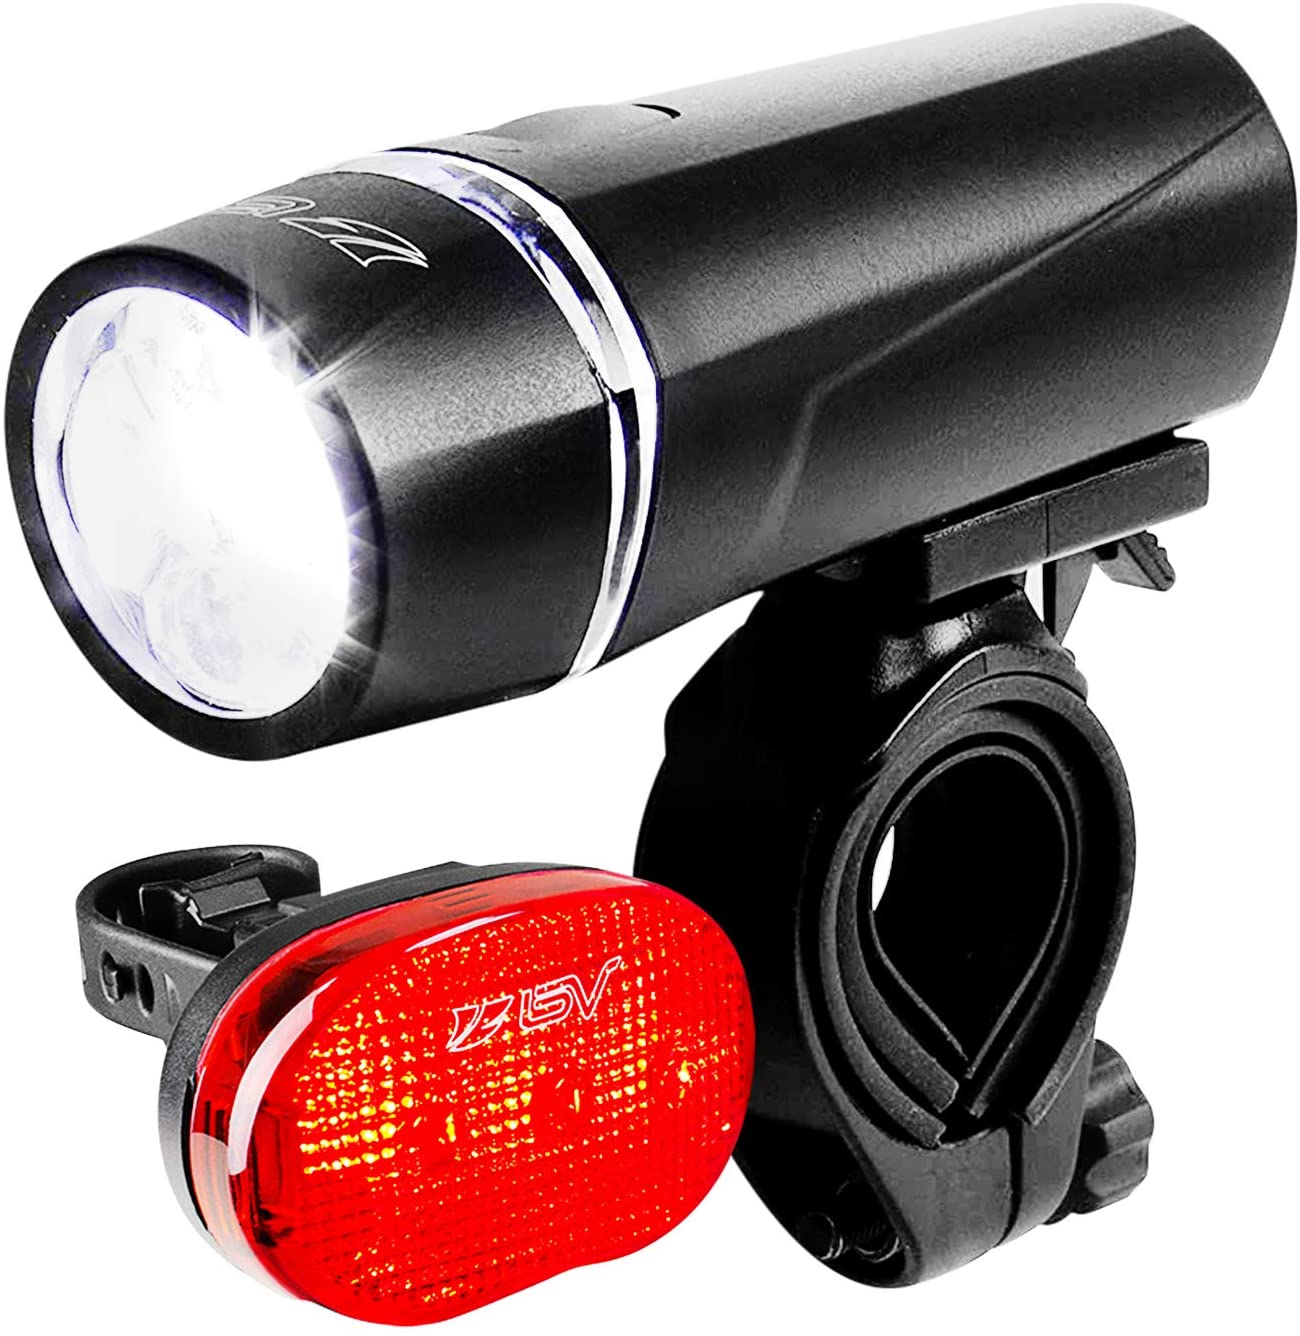 Front LED Headlight Electric Scooter Flashlight Lamp Accessories Plastic Light*1